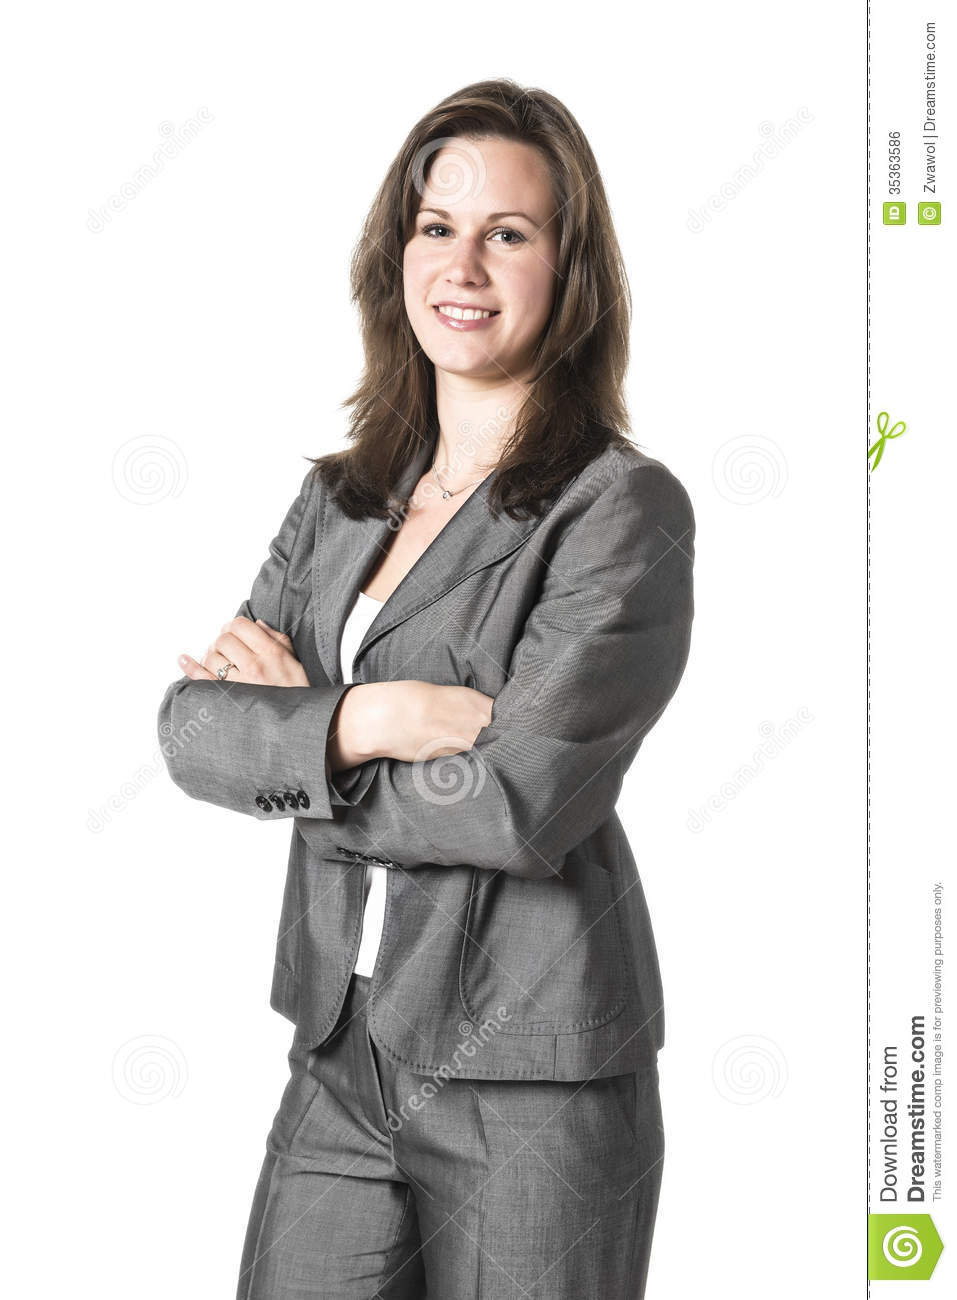 Business Woman In Grey Suit Royalty Free Stock Image ...